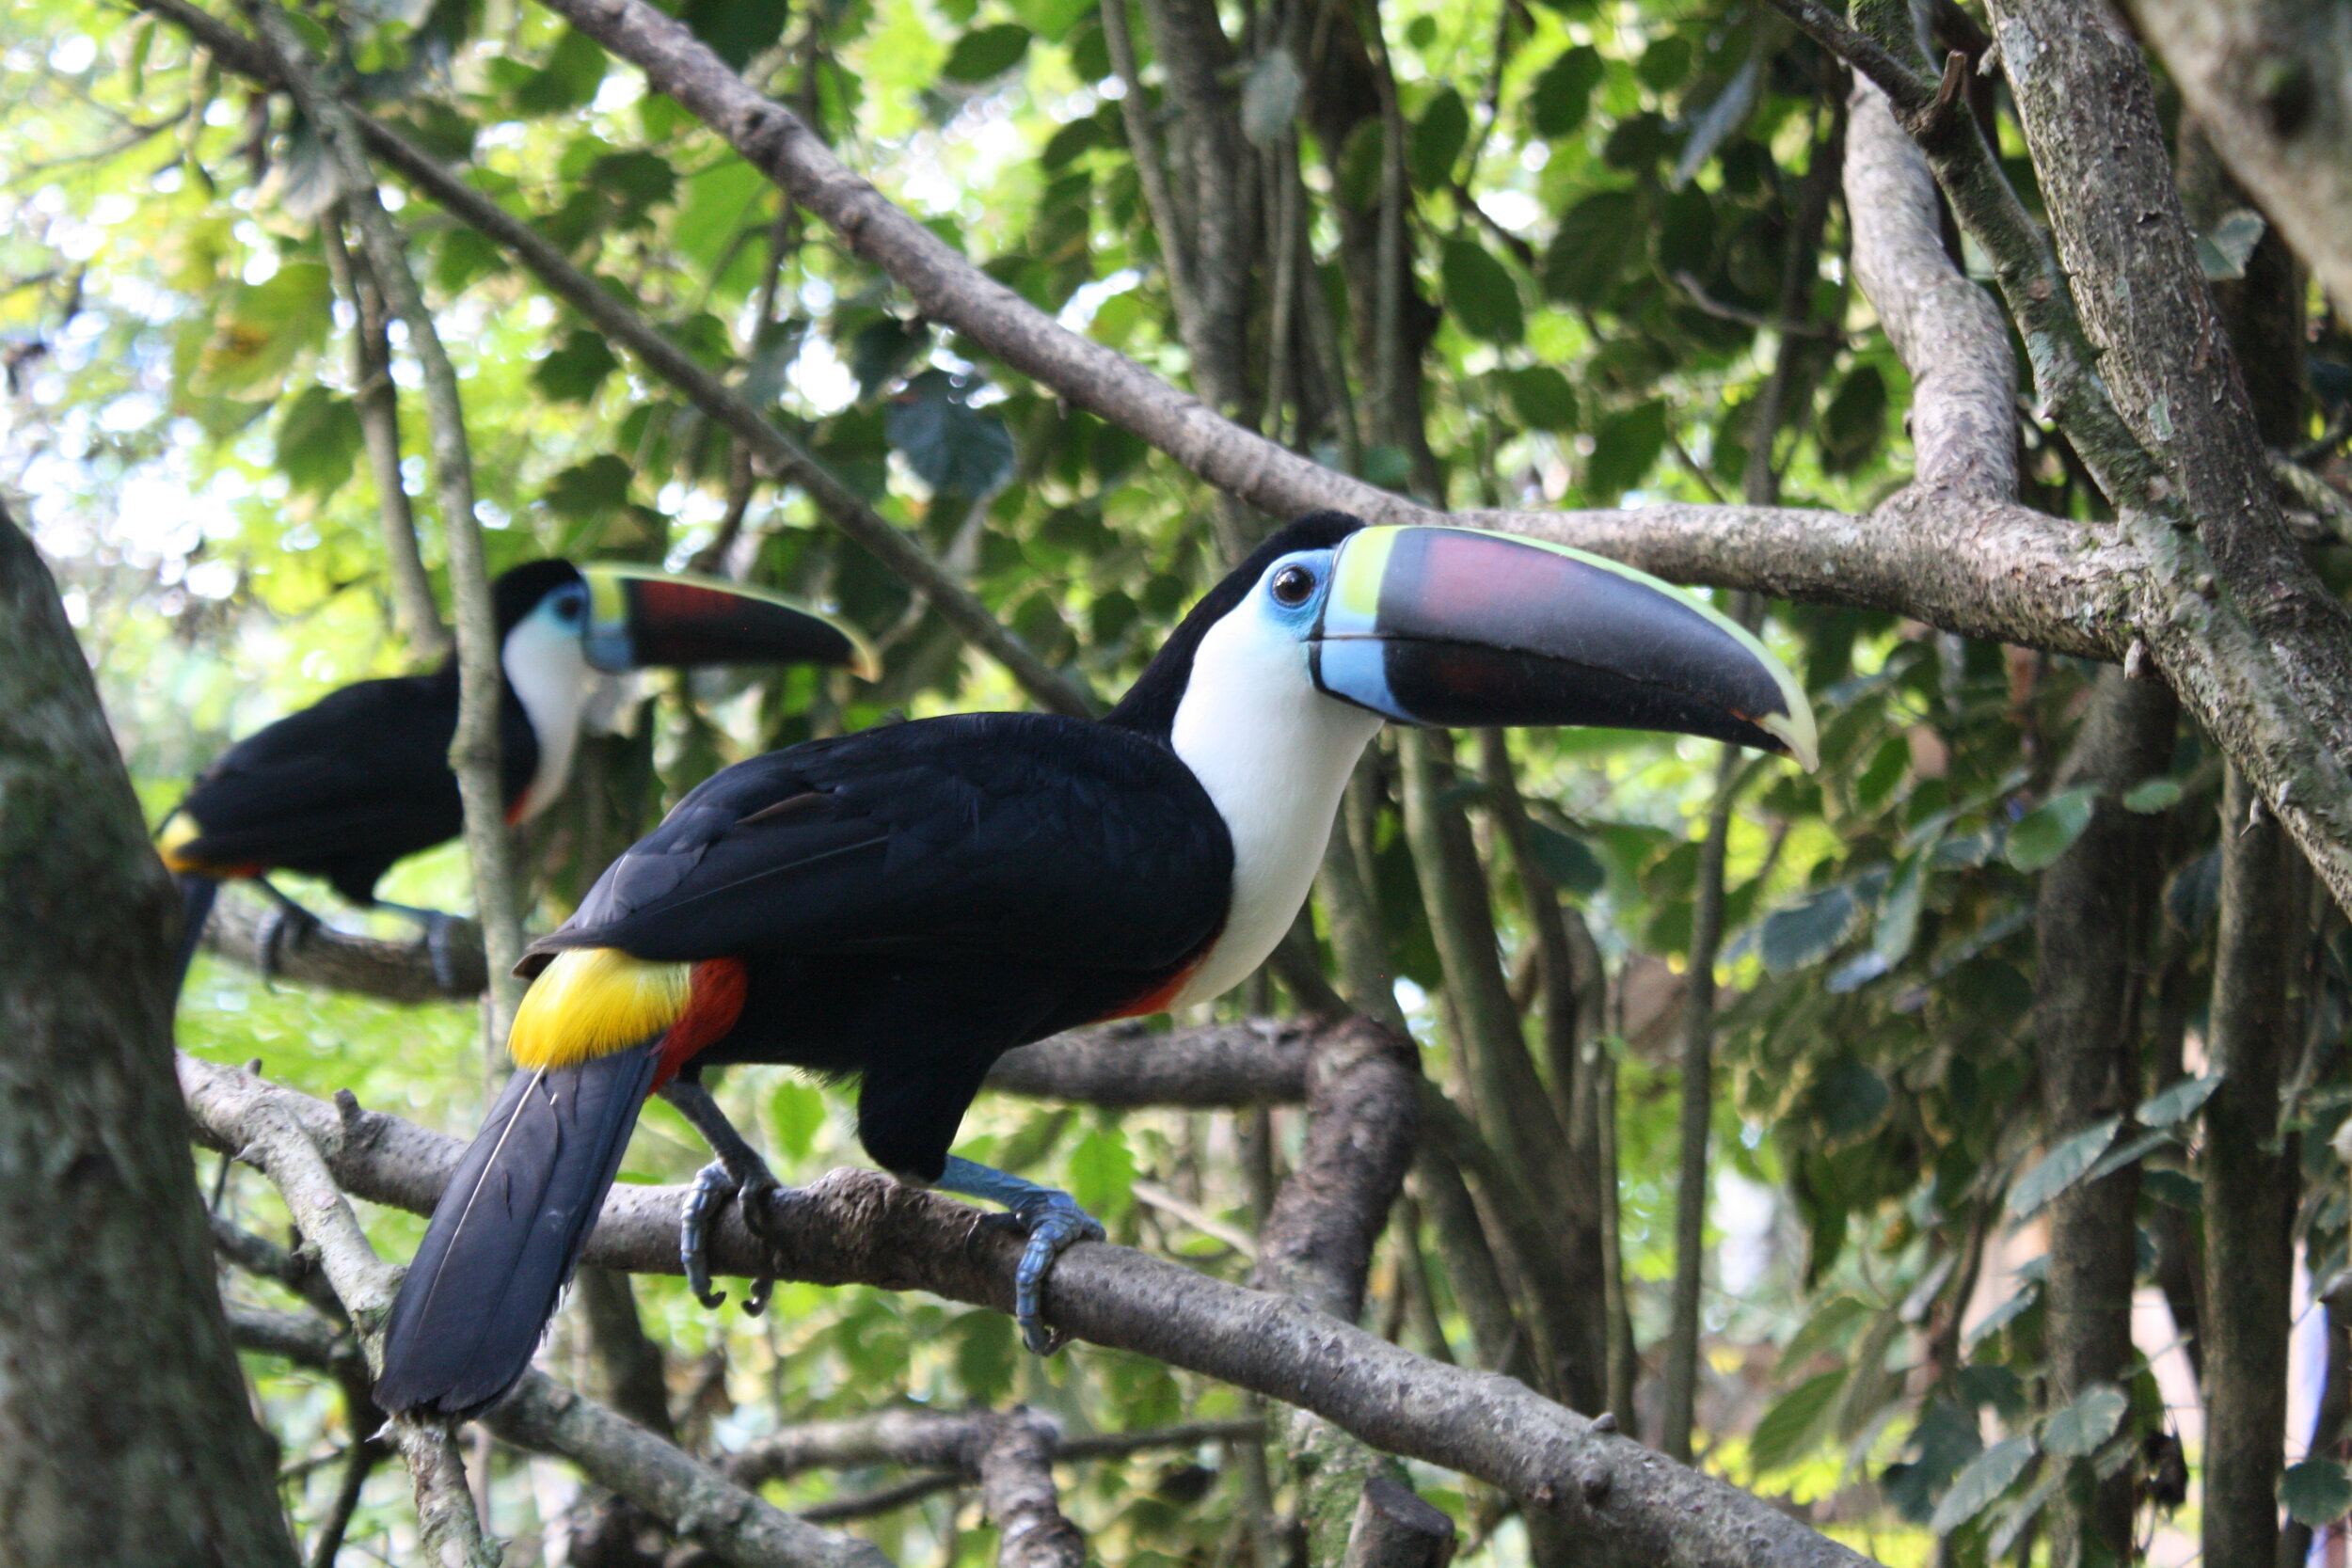 Toucans in the Amazon jungle